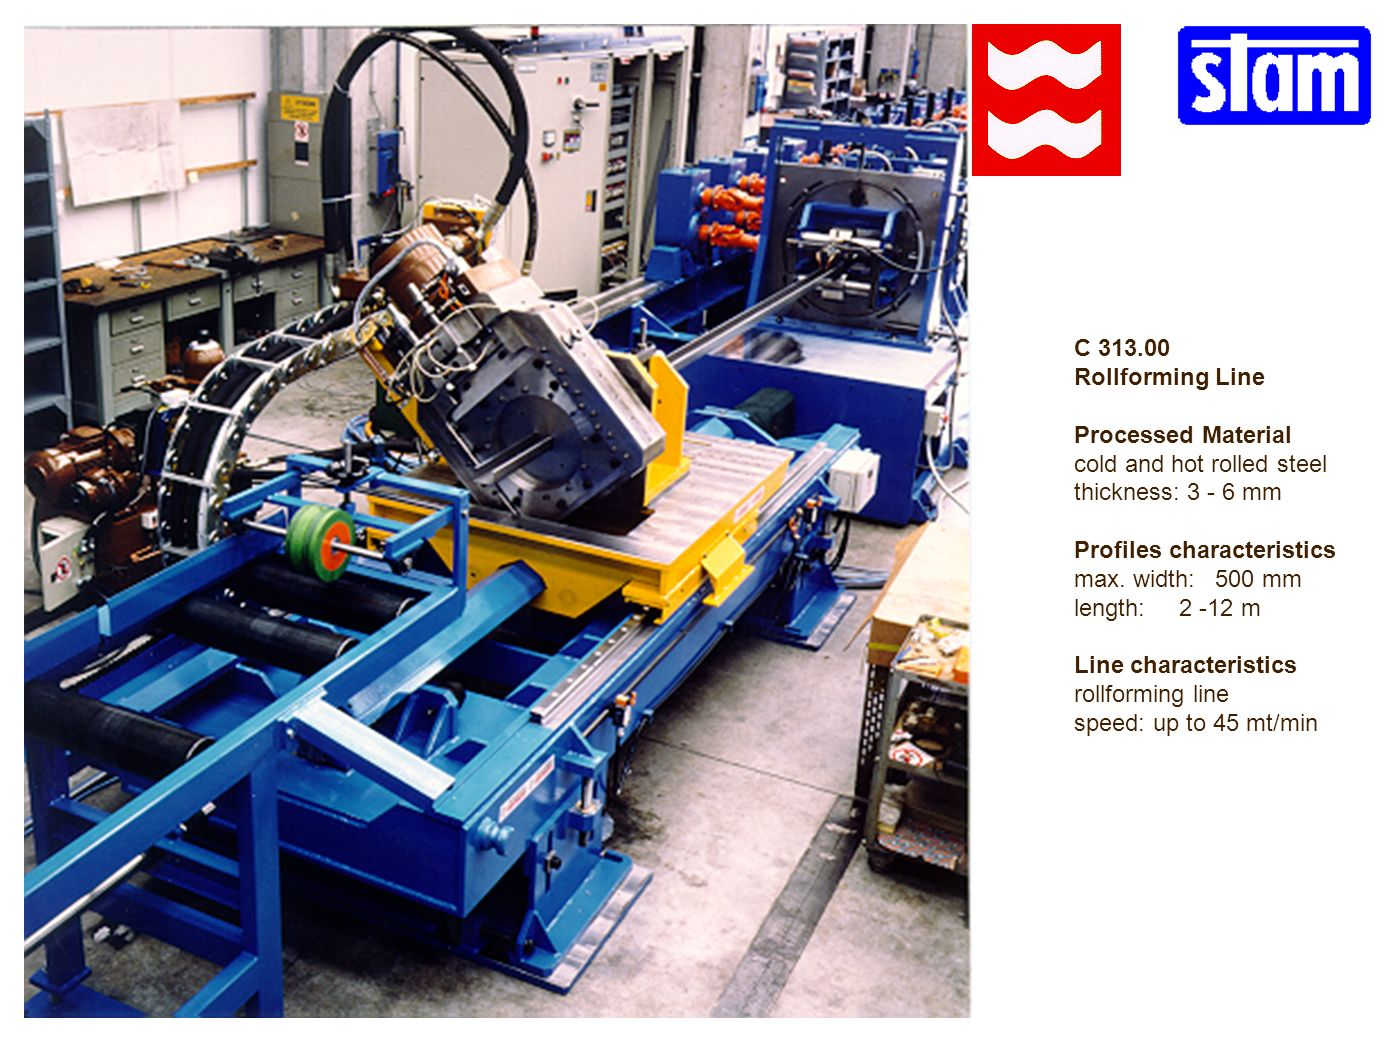 C 313.00 Rollforming Line. Processed Material. cold and hot rolled steel. thickness: 3 - 6 mm. Profiles characteristics.